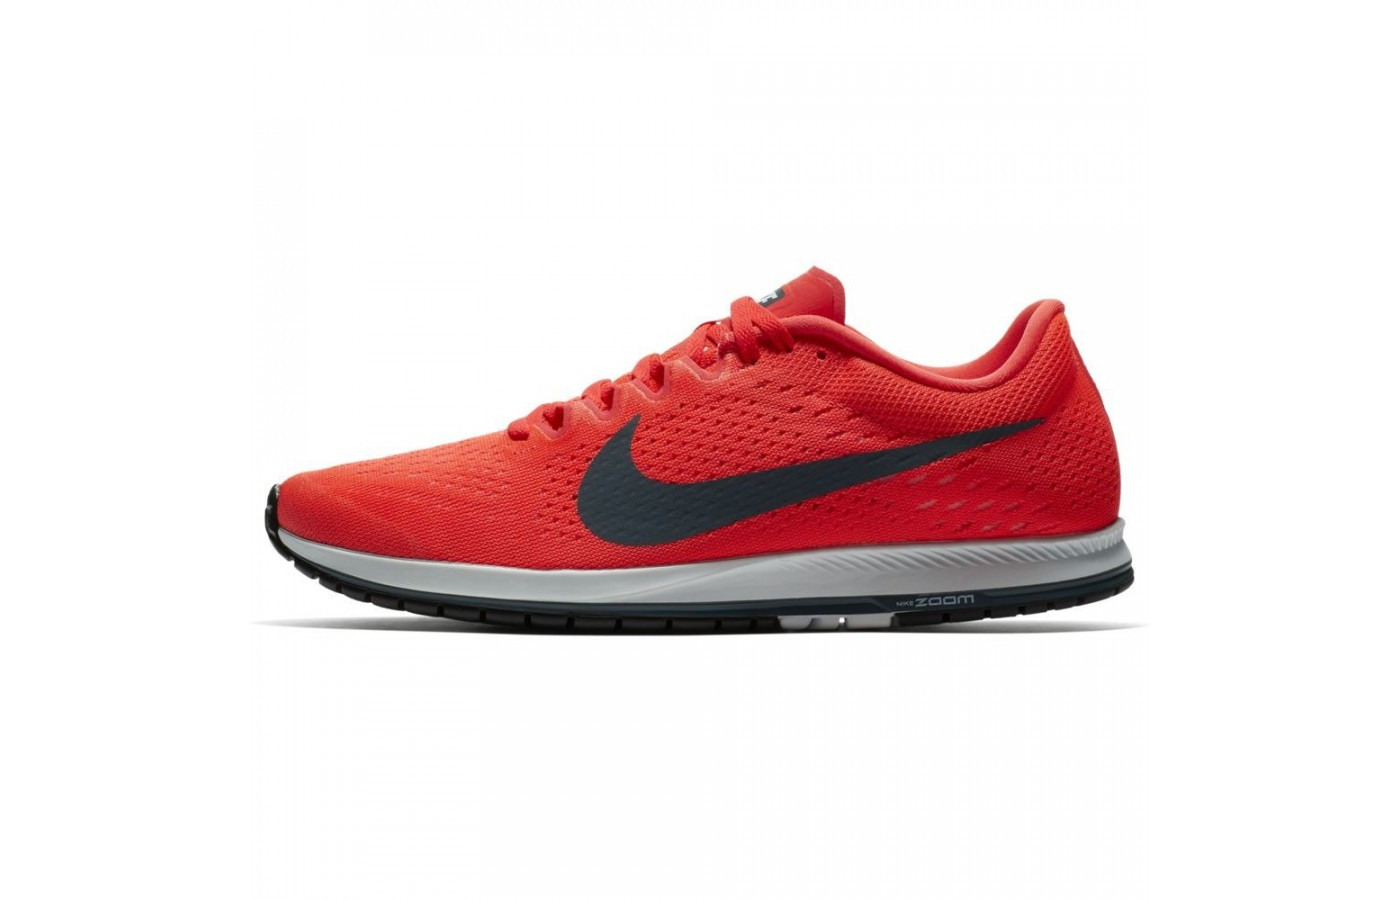 The Nike Zoom Streak 6 comes in numerous color choices to suit individual styles.